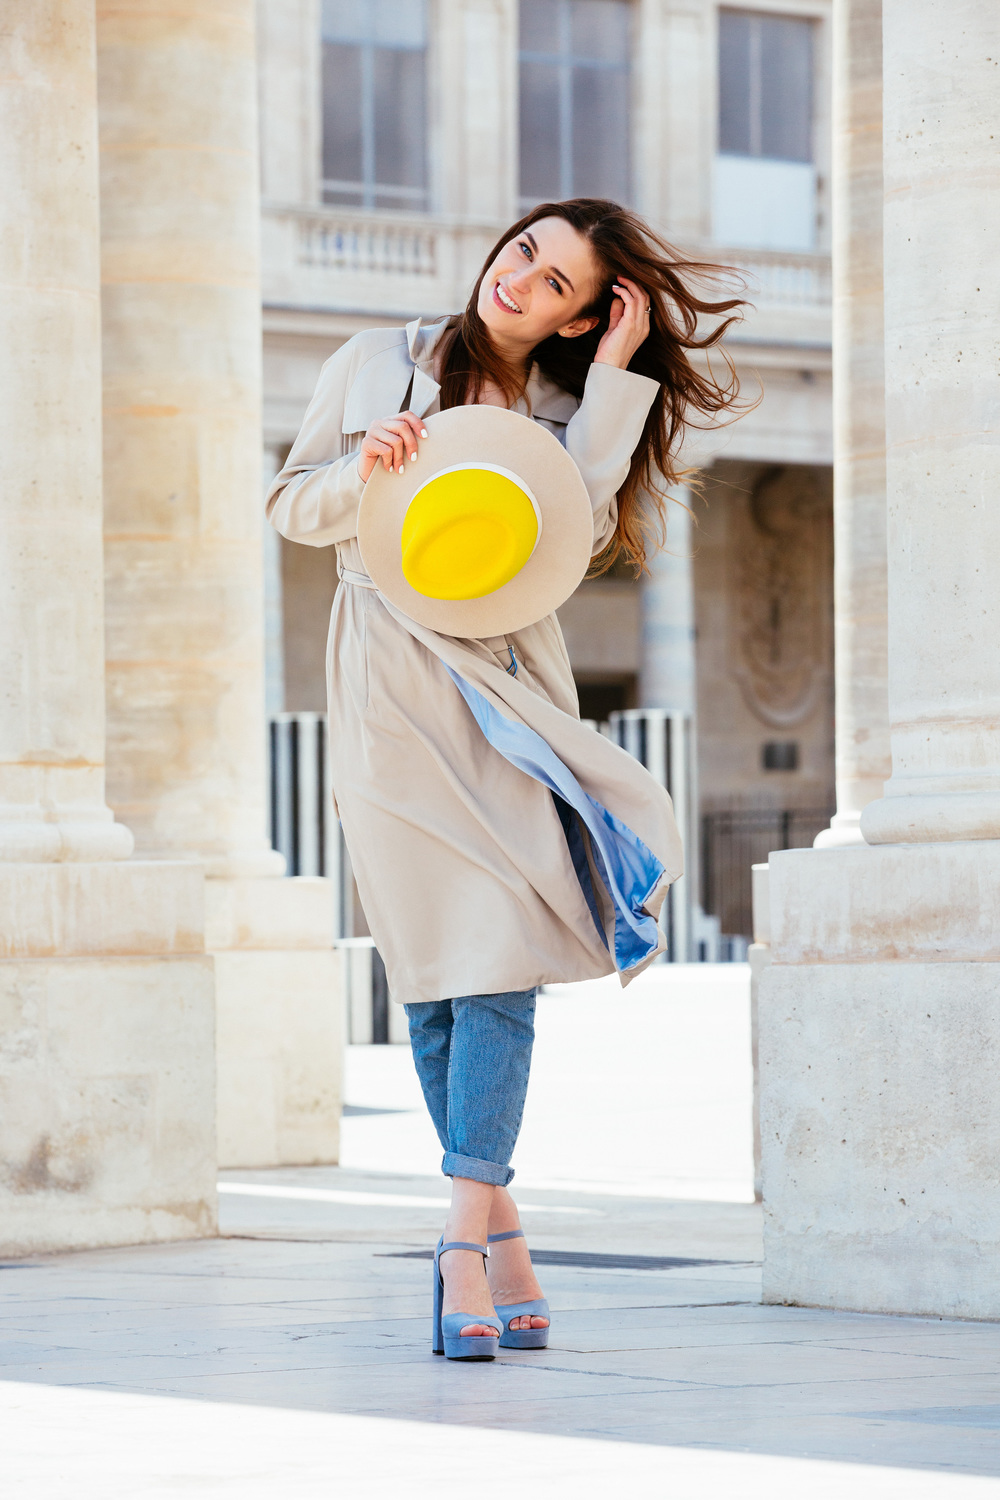 Paris Photographer Palais Royal Brand Lookbook Iheartparisfr